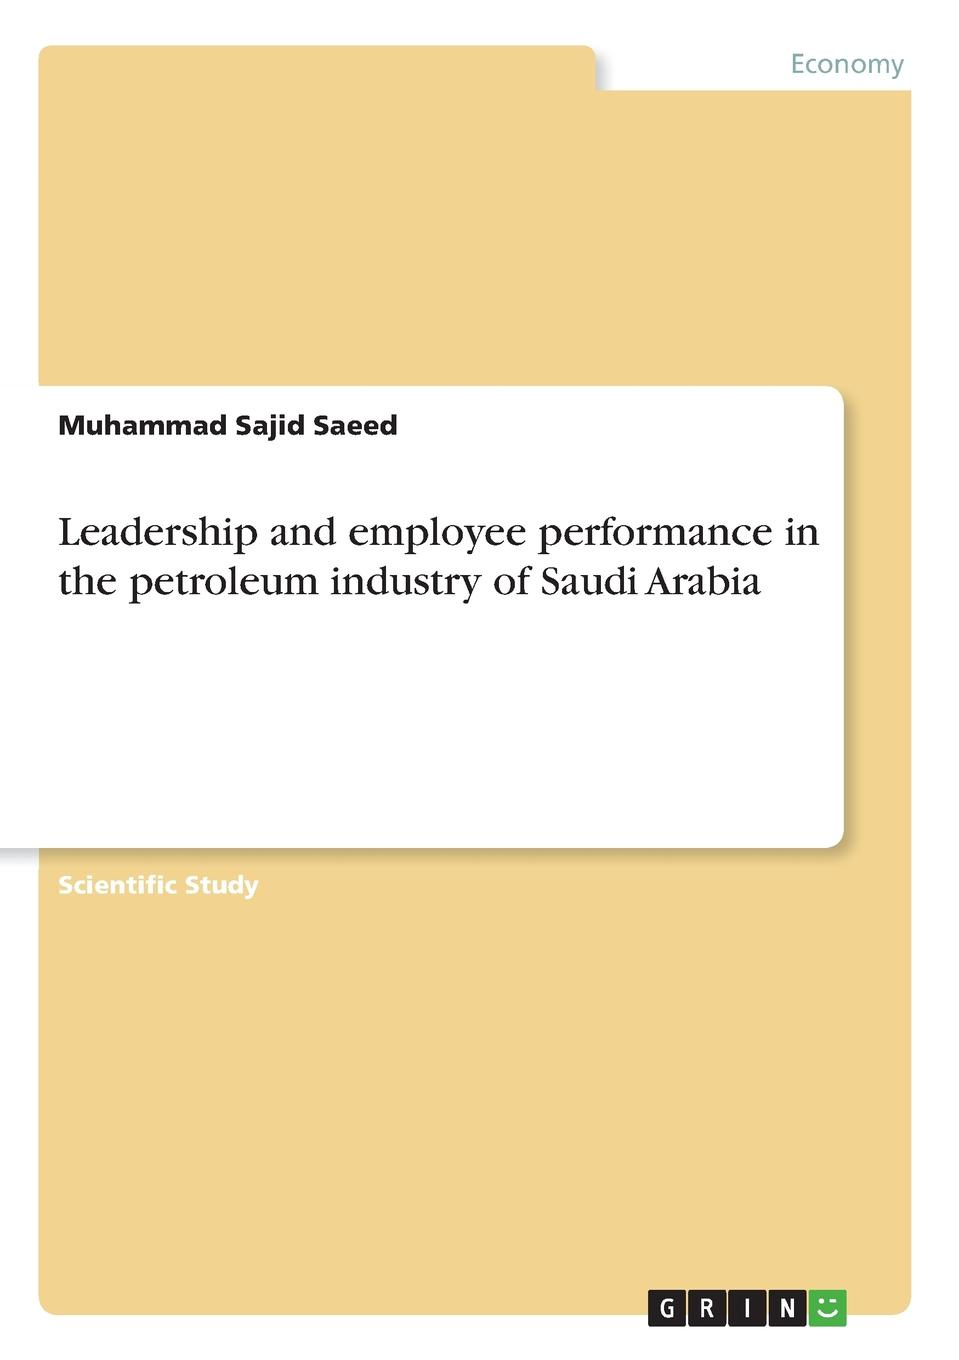 Muhammad Sajid Saeed Leadership and employee performance in the petroleum industry of Saudi Arabia edward burton business and entrepreneurship in saudi arabia opportunities for partnering and investing in emerging businesses